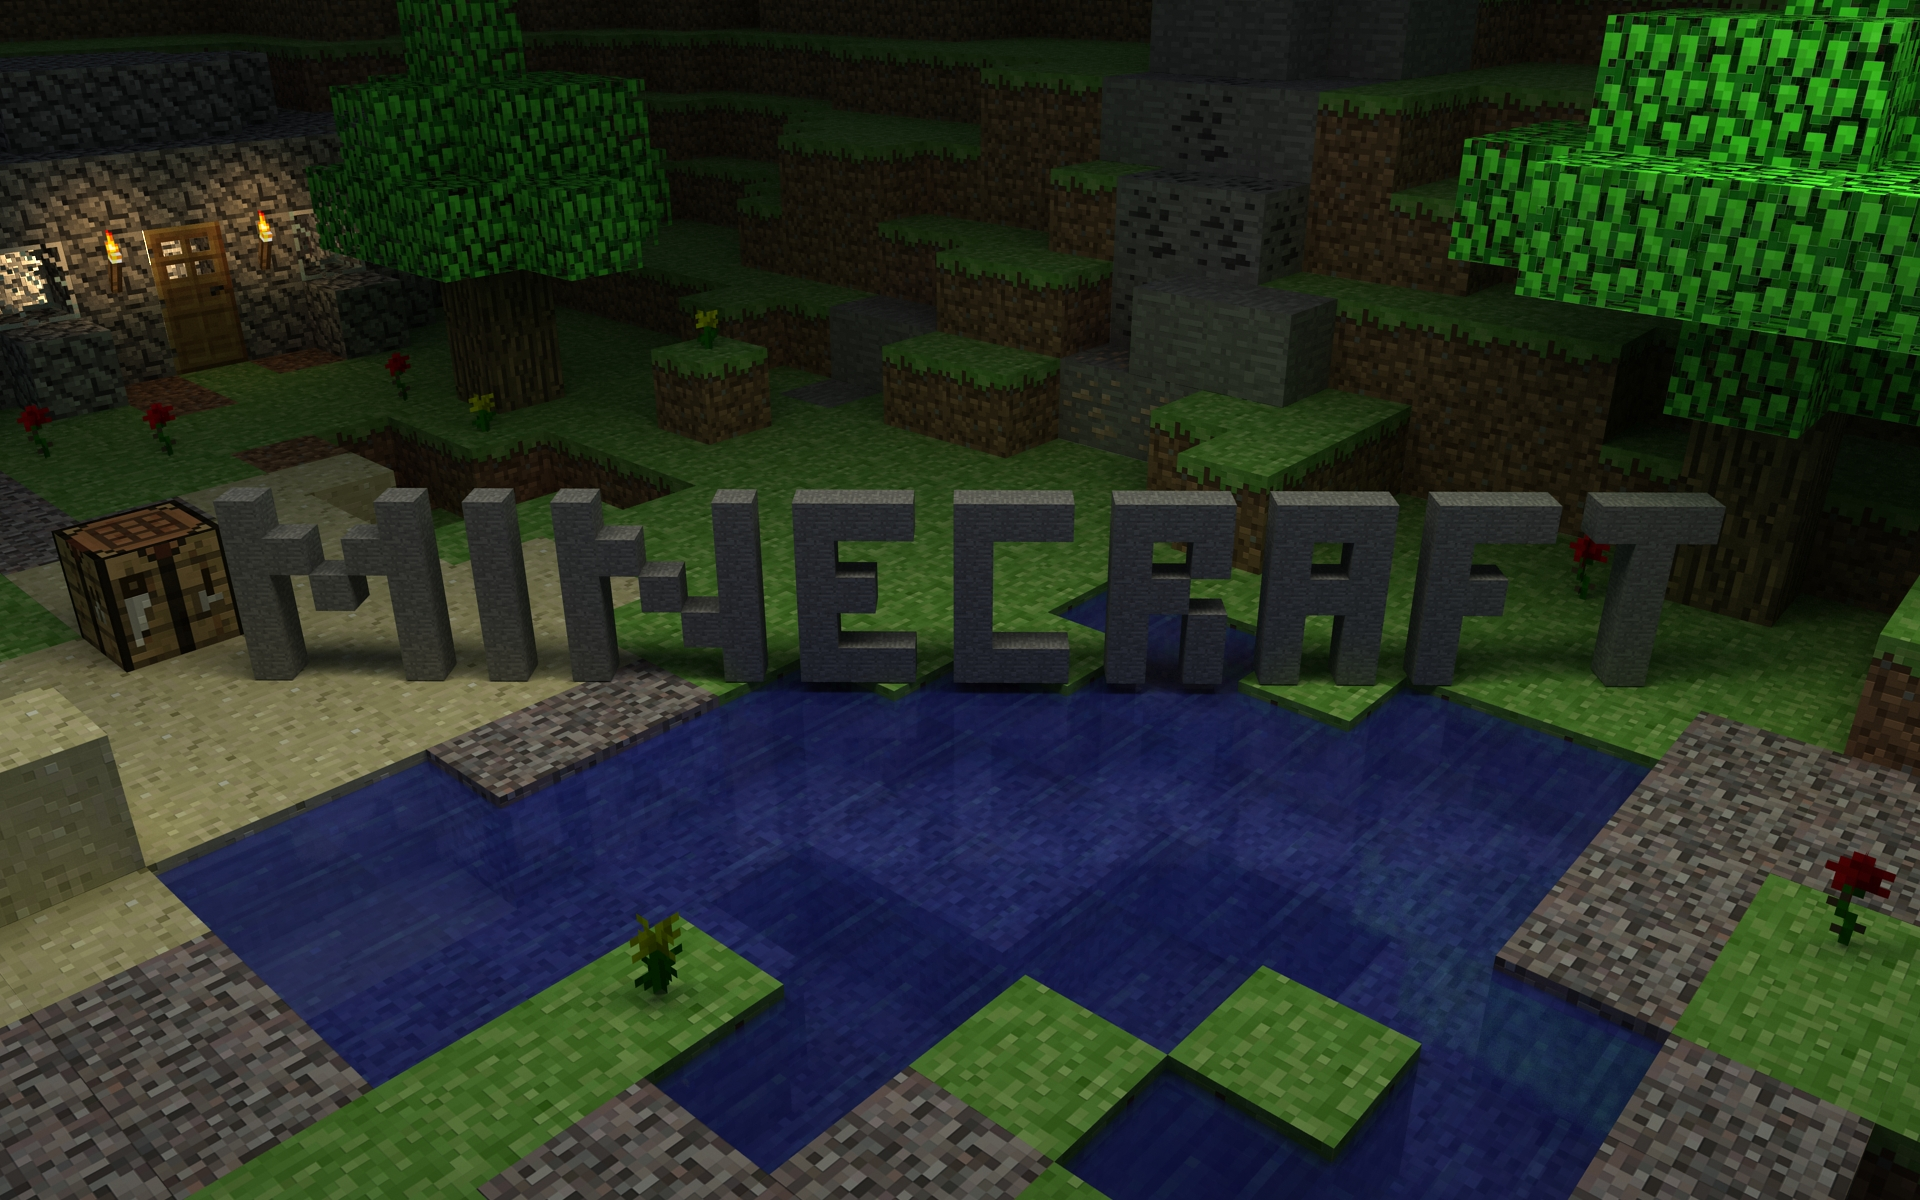 Epic Minecraft Wallpapers loopelecom 1920x1200